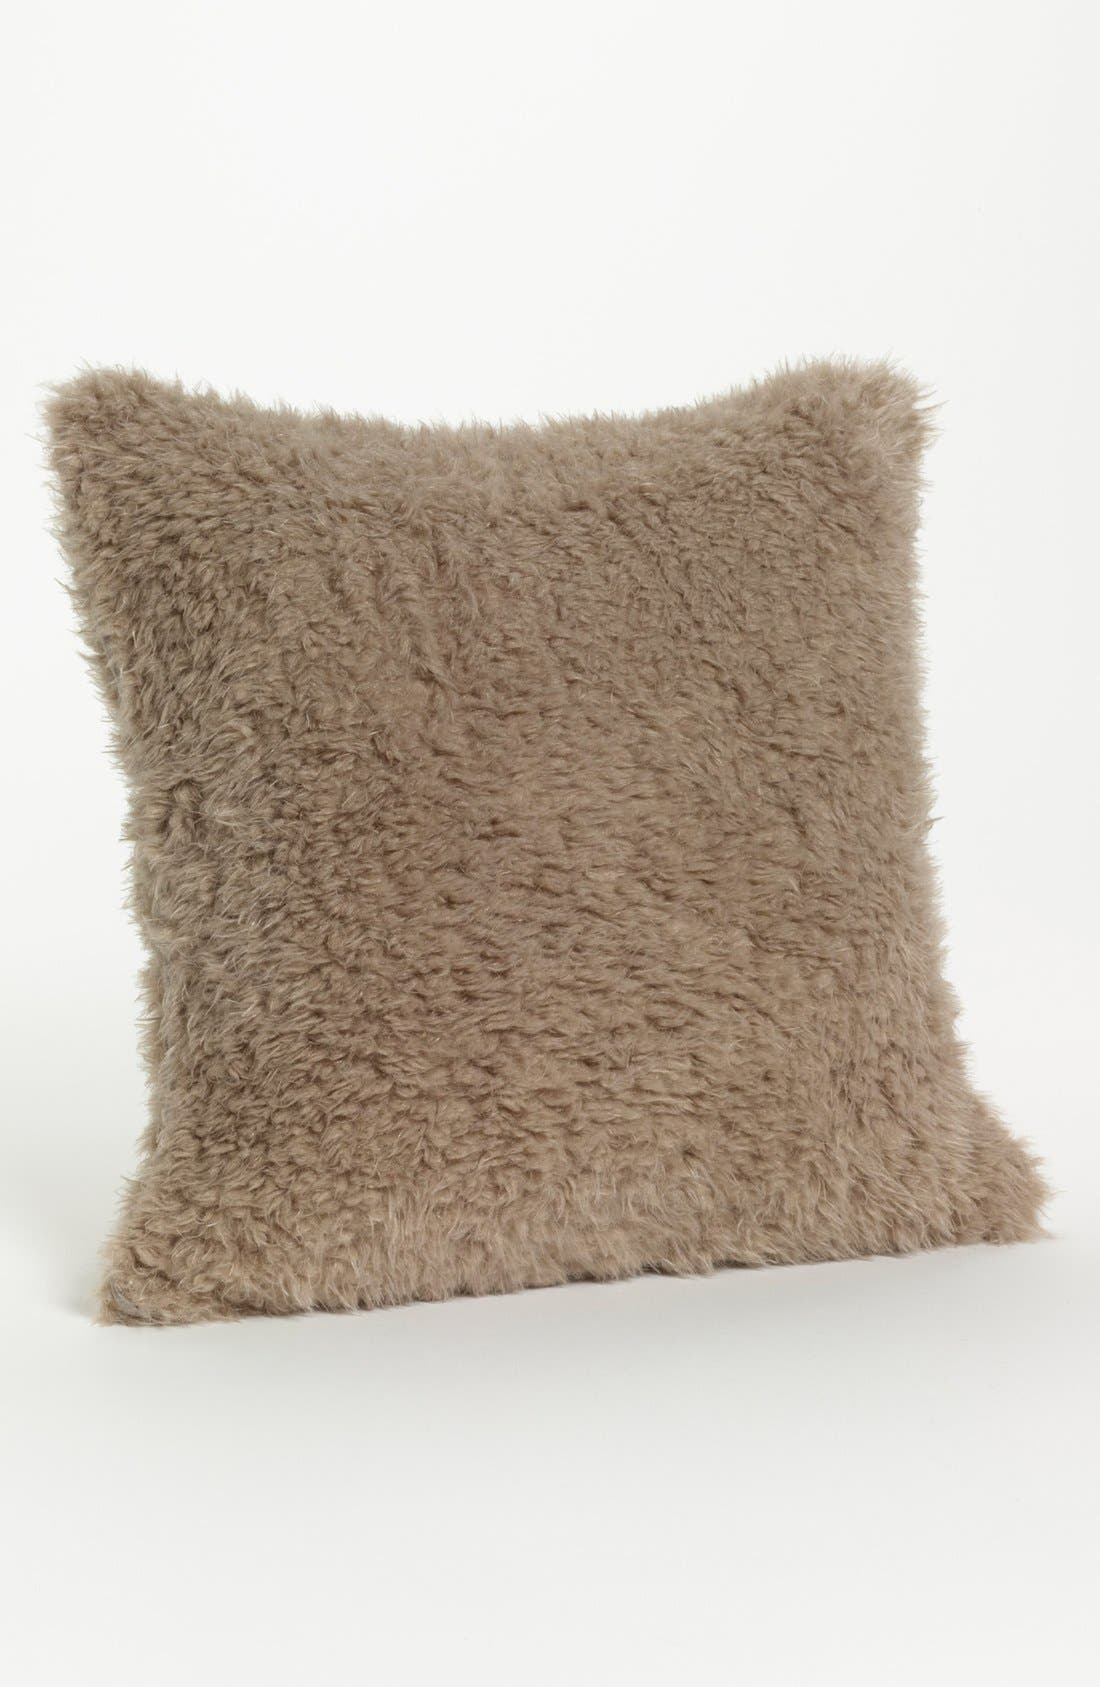 'Bella' Throw Pillow,                         Main,                         color, FLAX